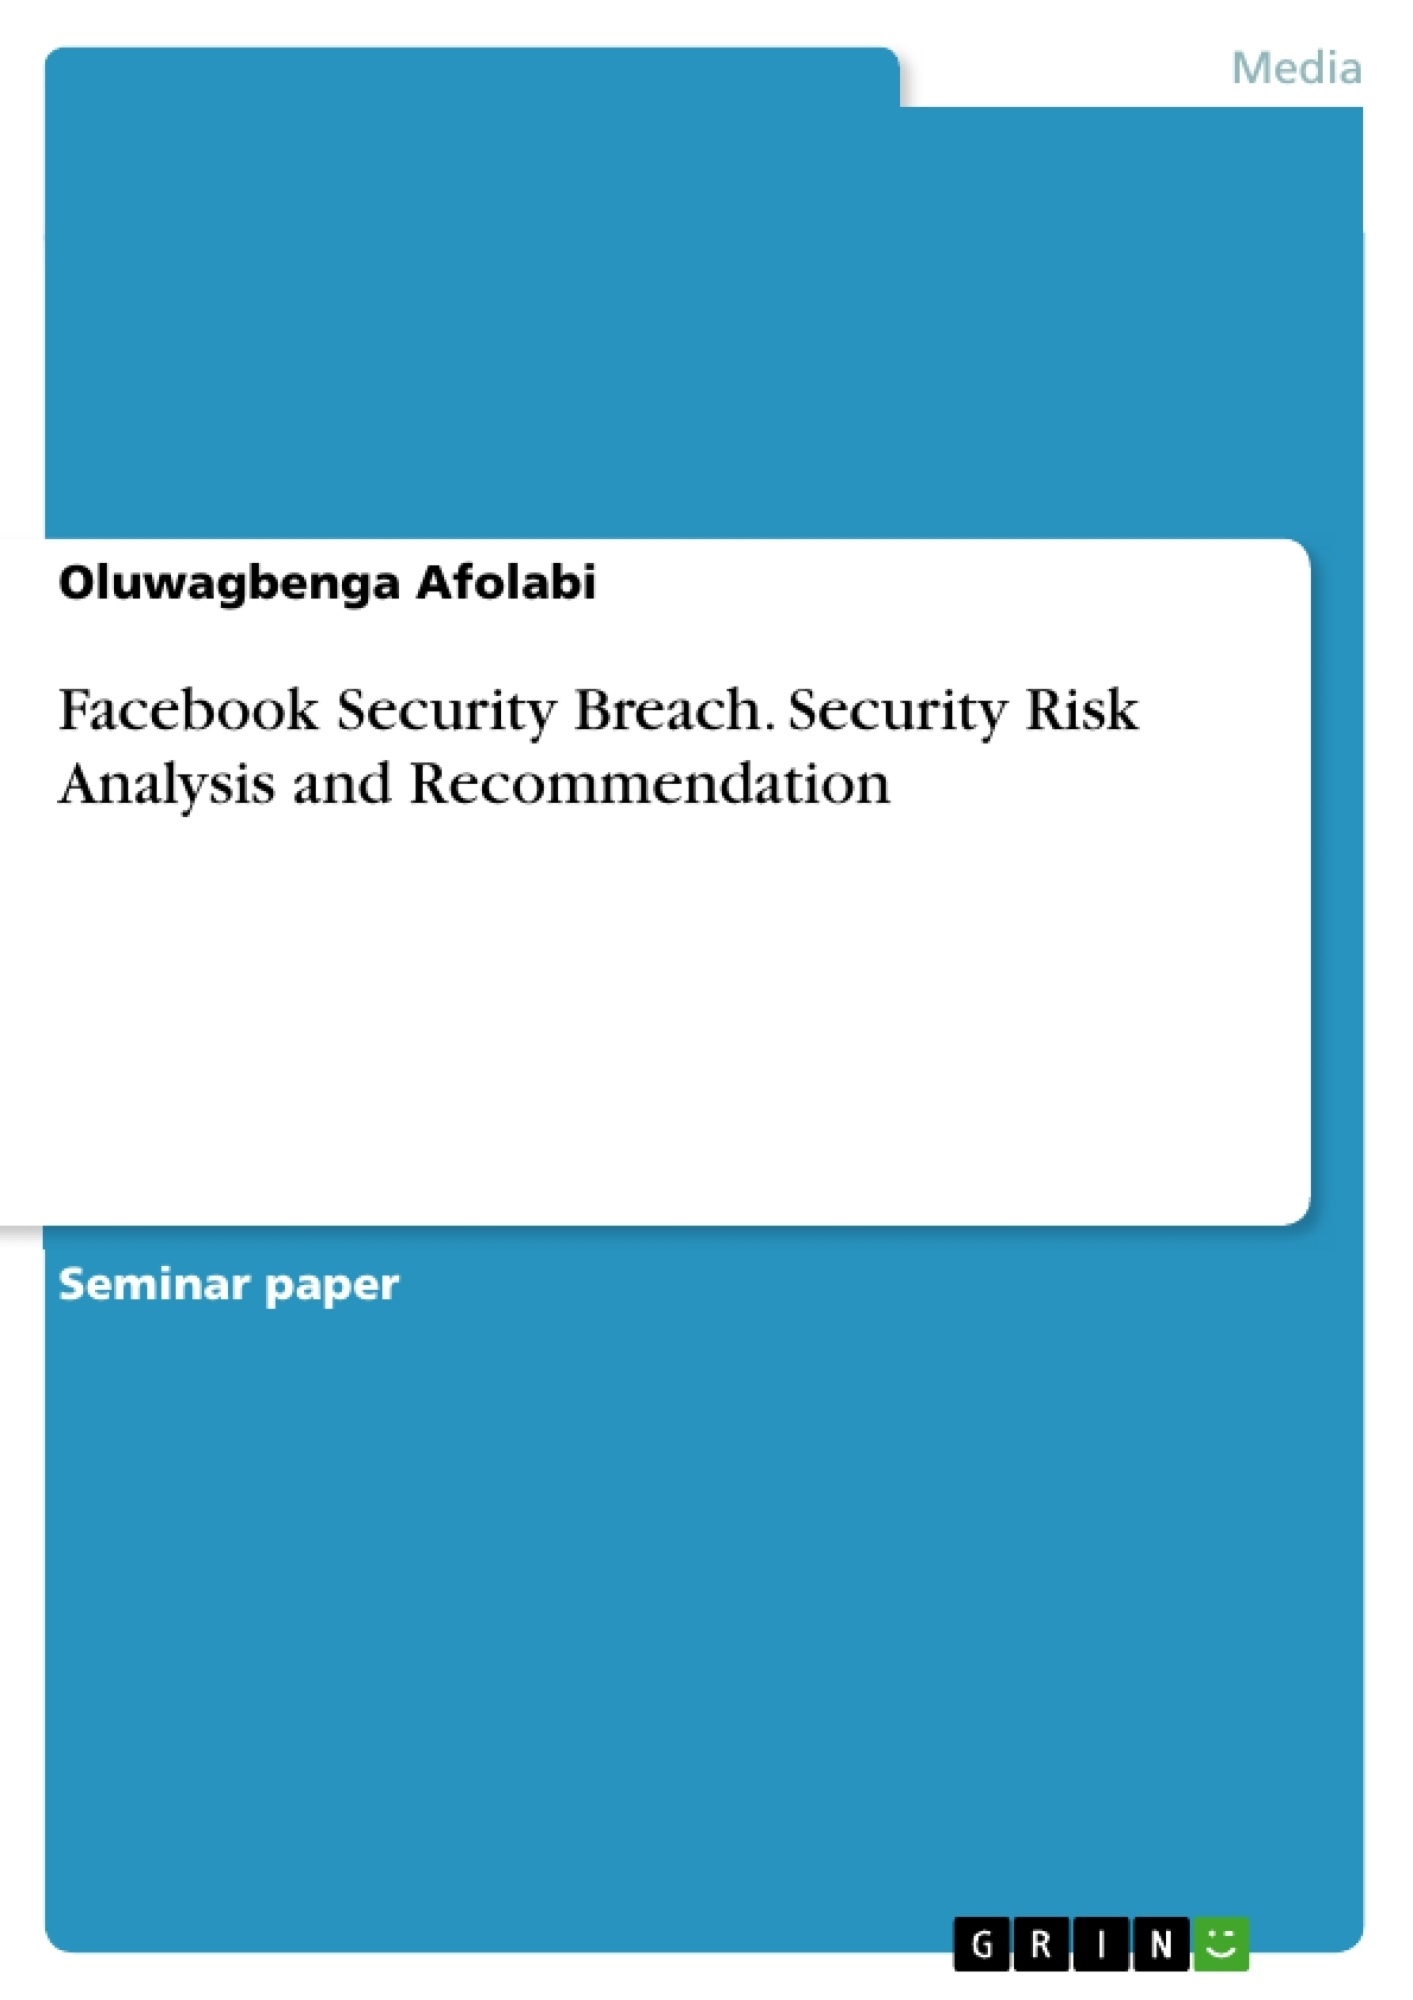 Title: Facebook Security Breach. Security Risk Analysis and Recommendation